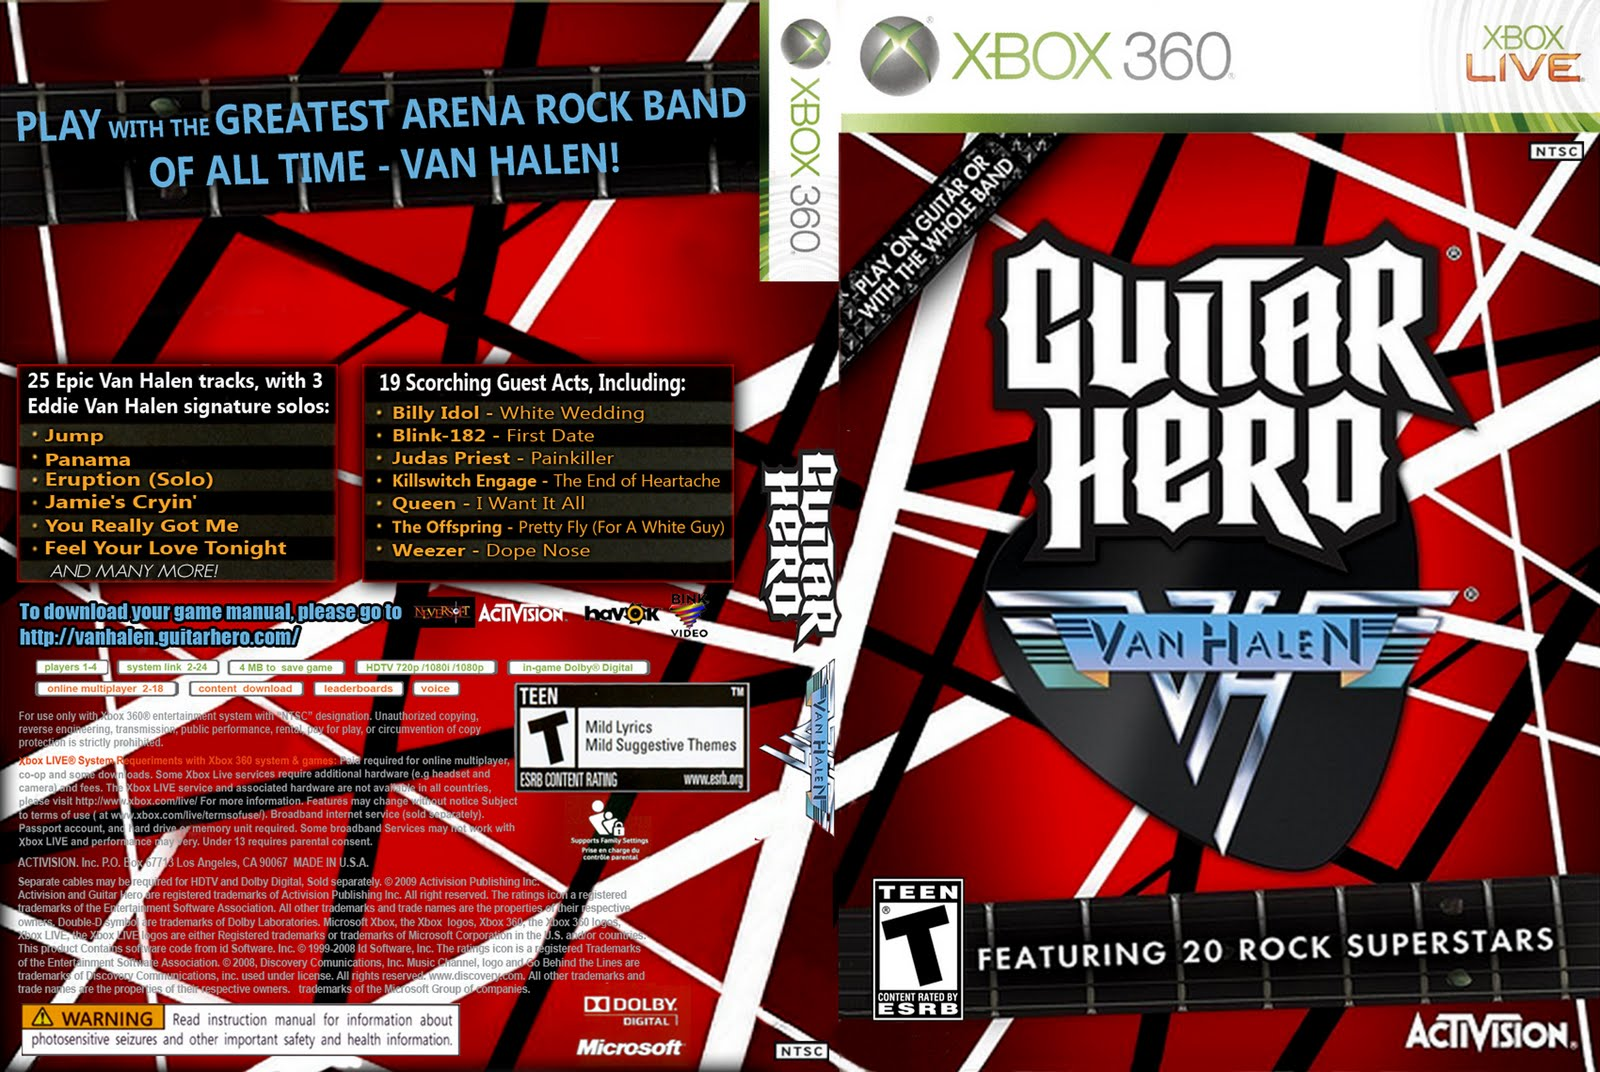 Guitar hero 3 ps2 iso torrent download